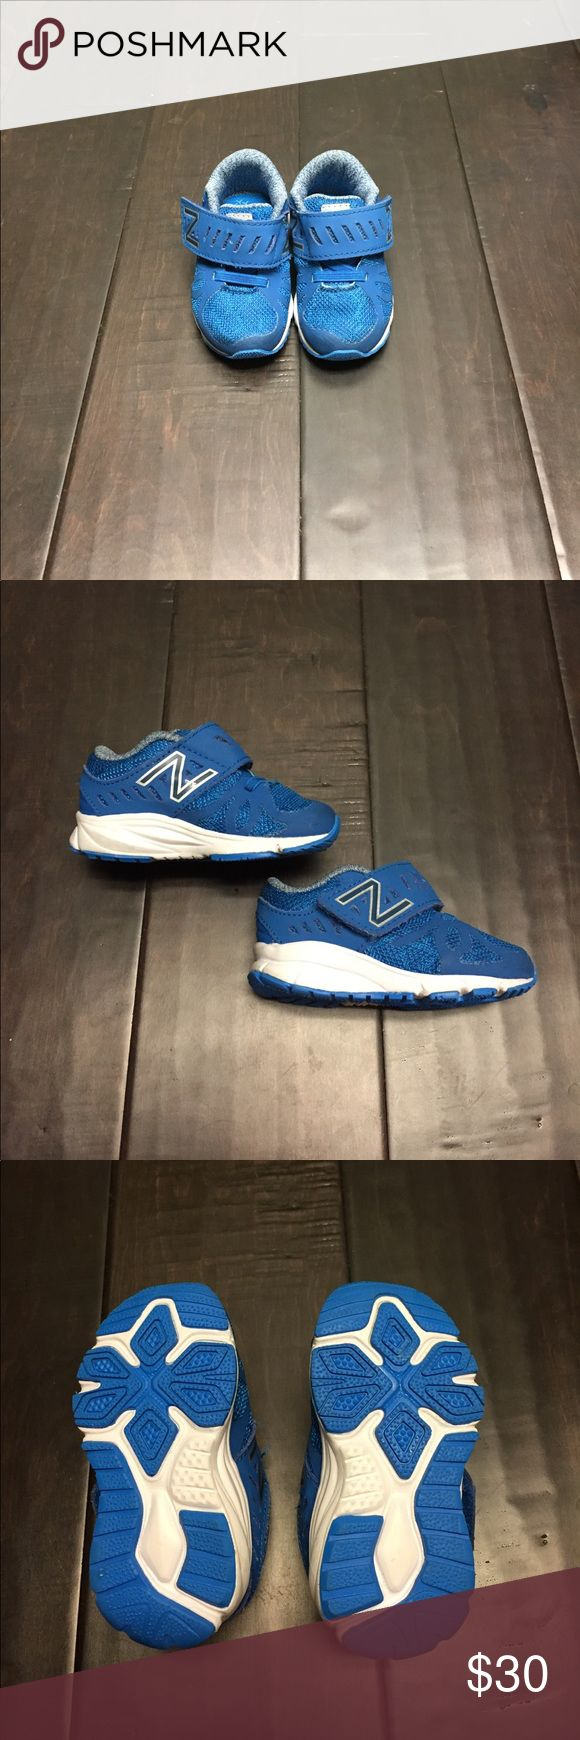 NWOT toddler New Balance Sneakers NWOT adorable toddler New Balance Sneakers. Tried on, never worn. Velcro closure. Size 4. New Balance Shoes Baby & Walker